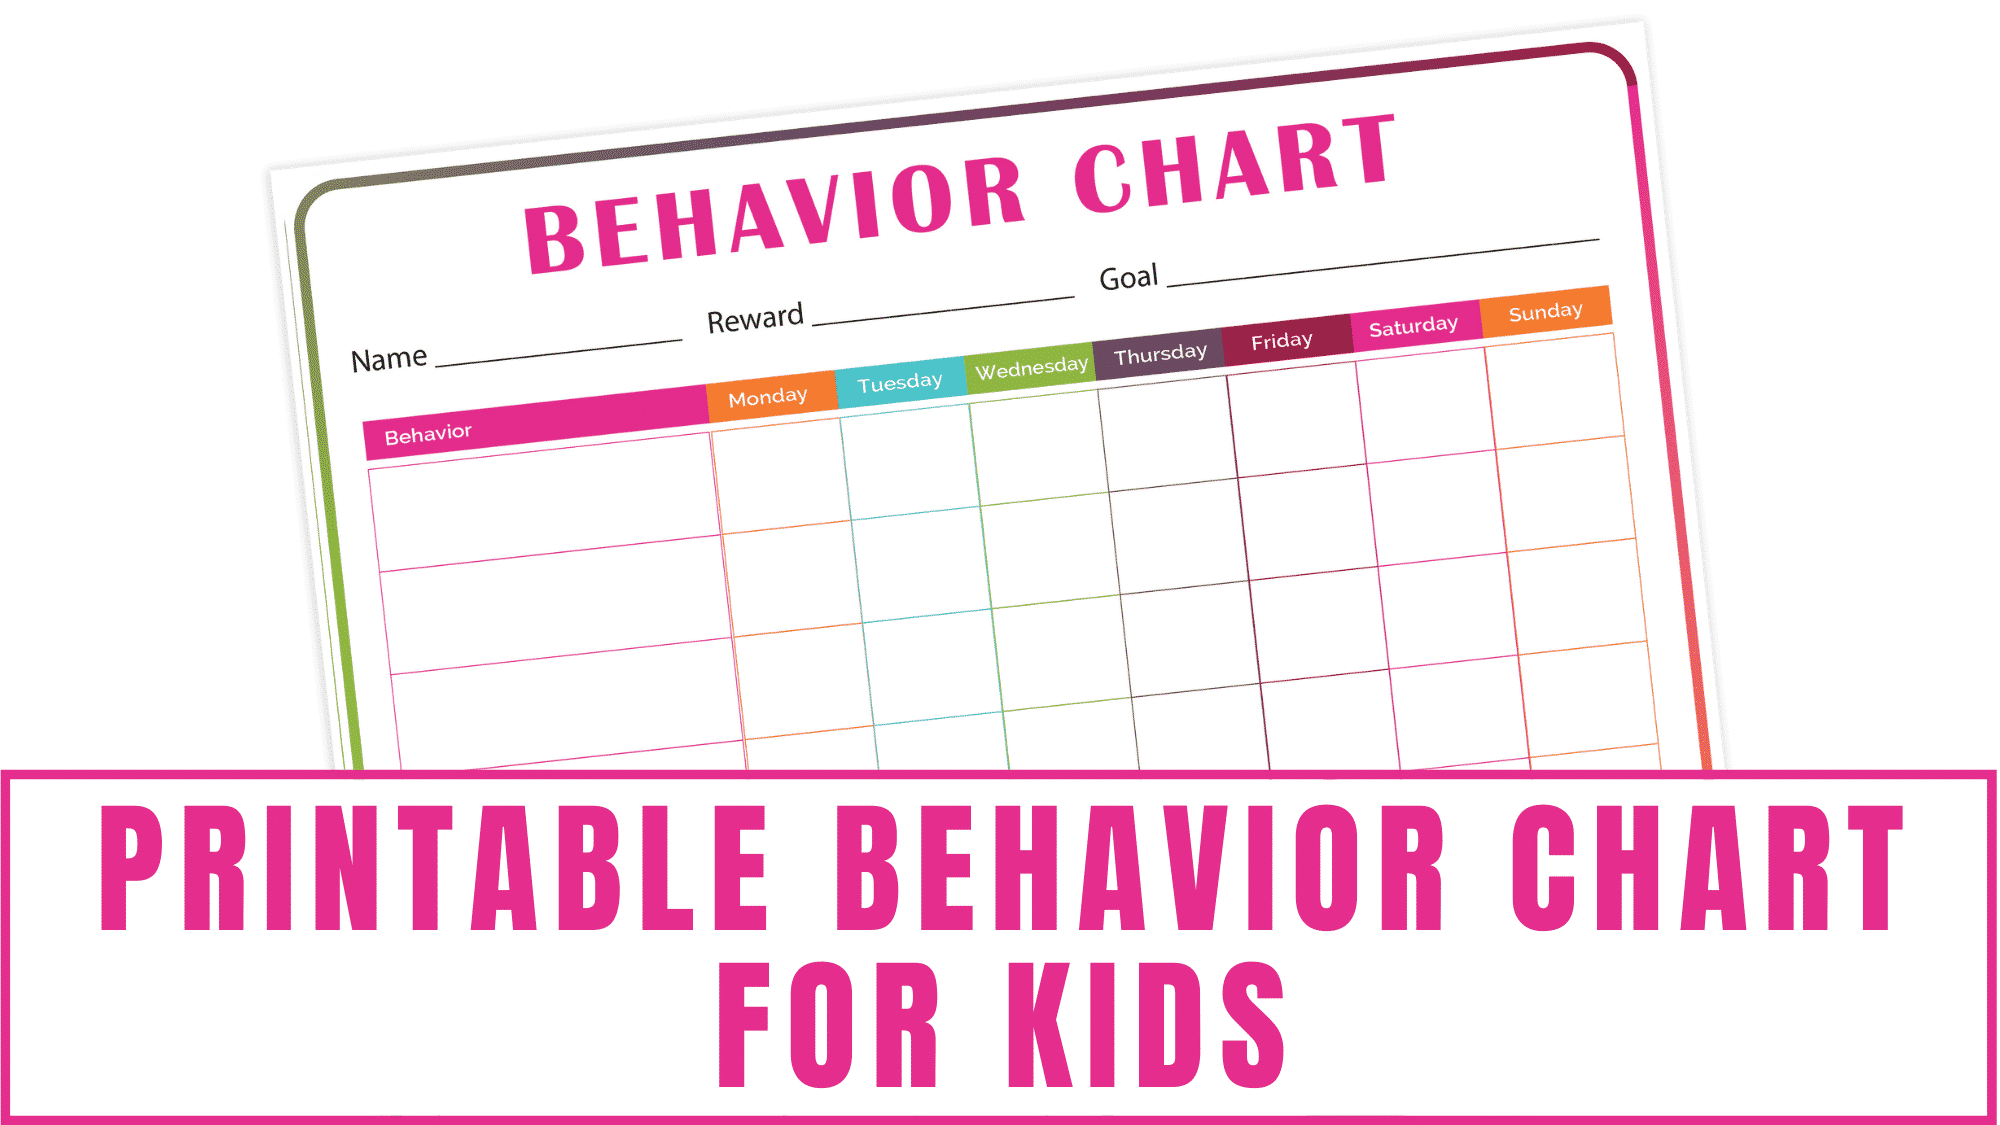 Are you trying to get your kid to display certain behaviors like to do their homework and be nice to others? List the desired behaviors on this printable behavior chart for kids and consider offering them a reward for a job well done.